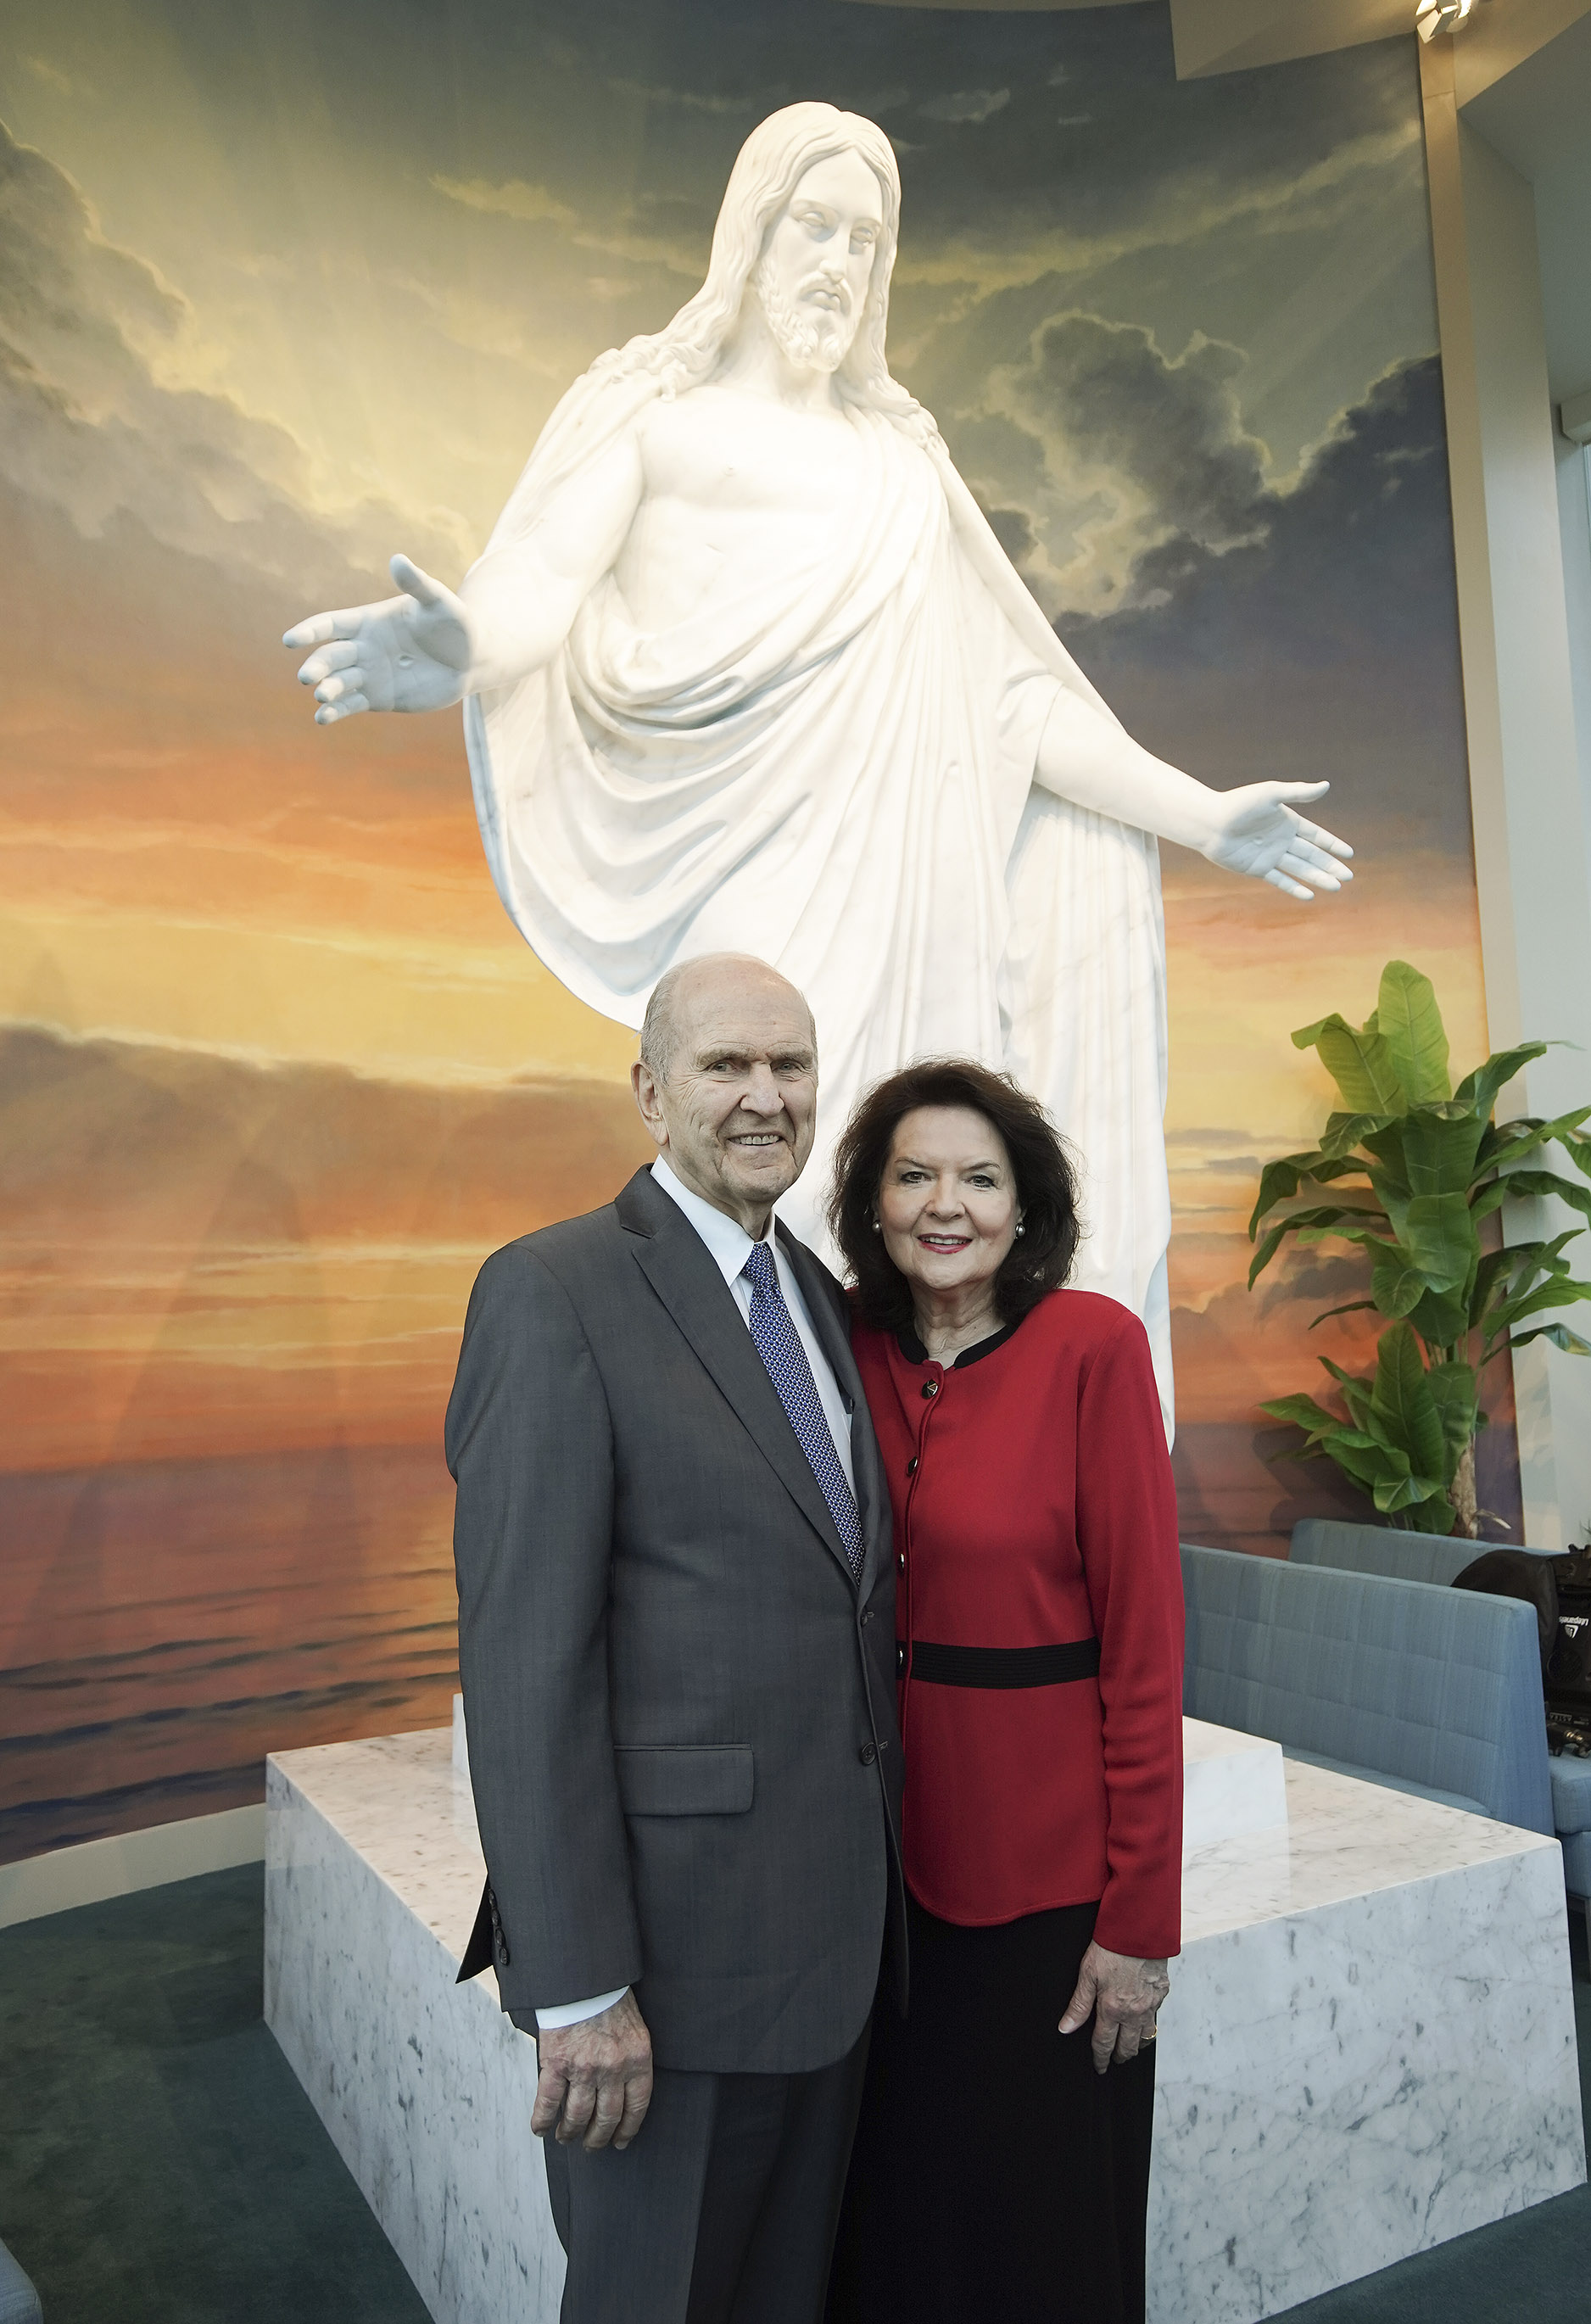 President Russell M. Nelson of The Church of Jesus Christ of Latter-day Saints and his wife, Sister Wendy Nelson, pose in the Sao Paulo Brazil Temple Visitors' Center in Sao Paulo, Brazil, on Aug. 31, 2019.